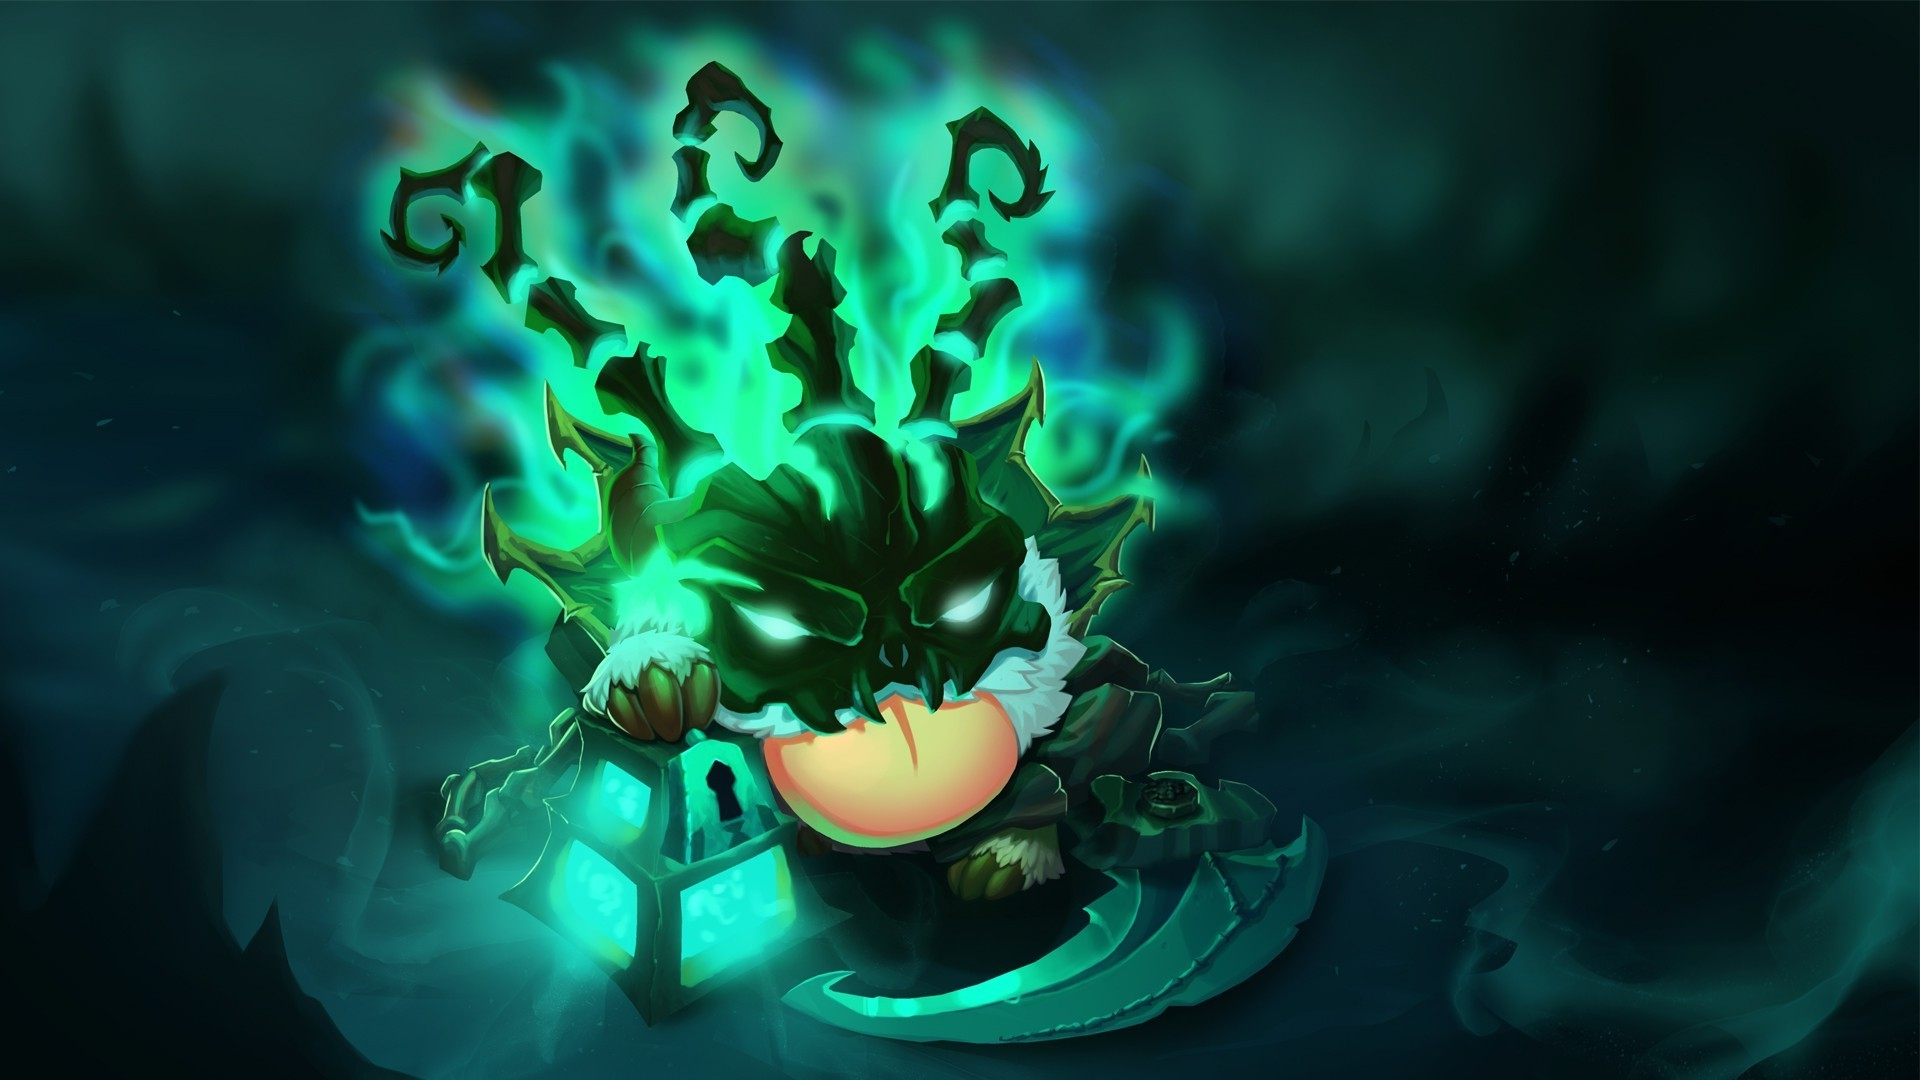 League Of Legends, Poro, Thresh Wallpapers HD / Desktop and Mobile  Backgrounds